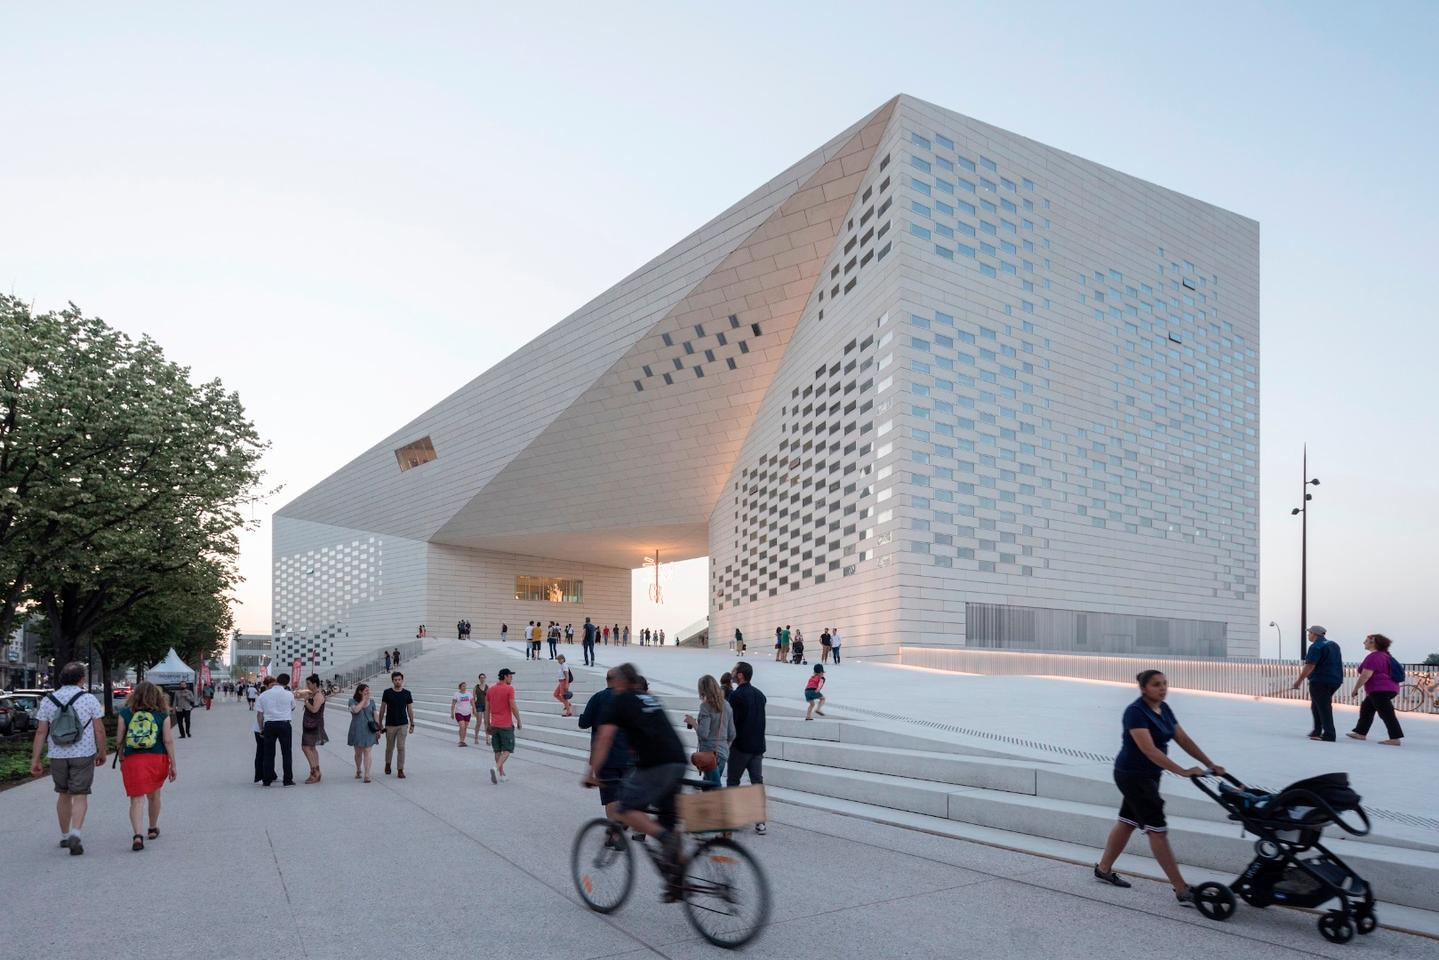 MÉCA's facade is made up of 4,800 prefabricated concrete panels that weigh up to 1.6 tons each